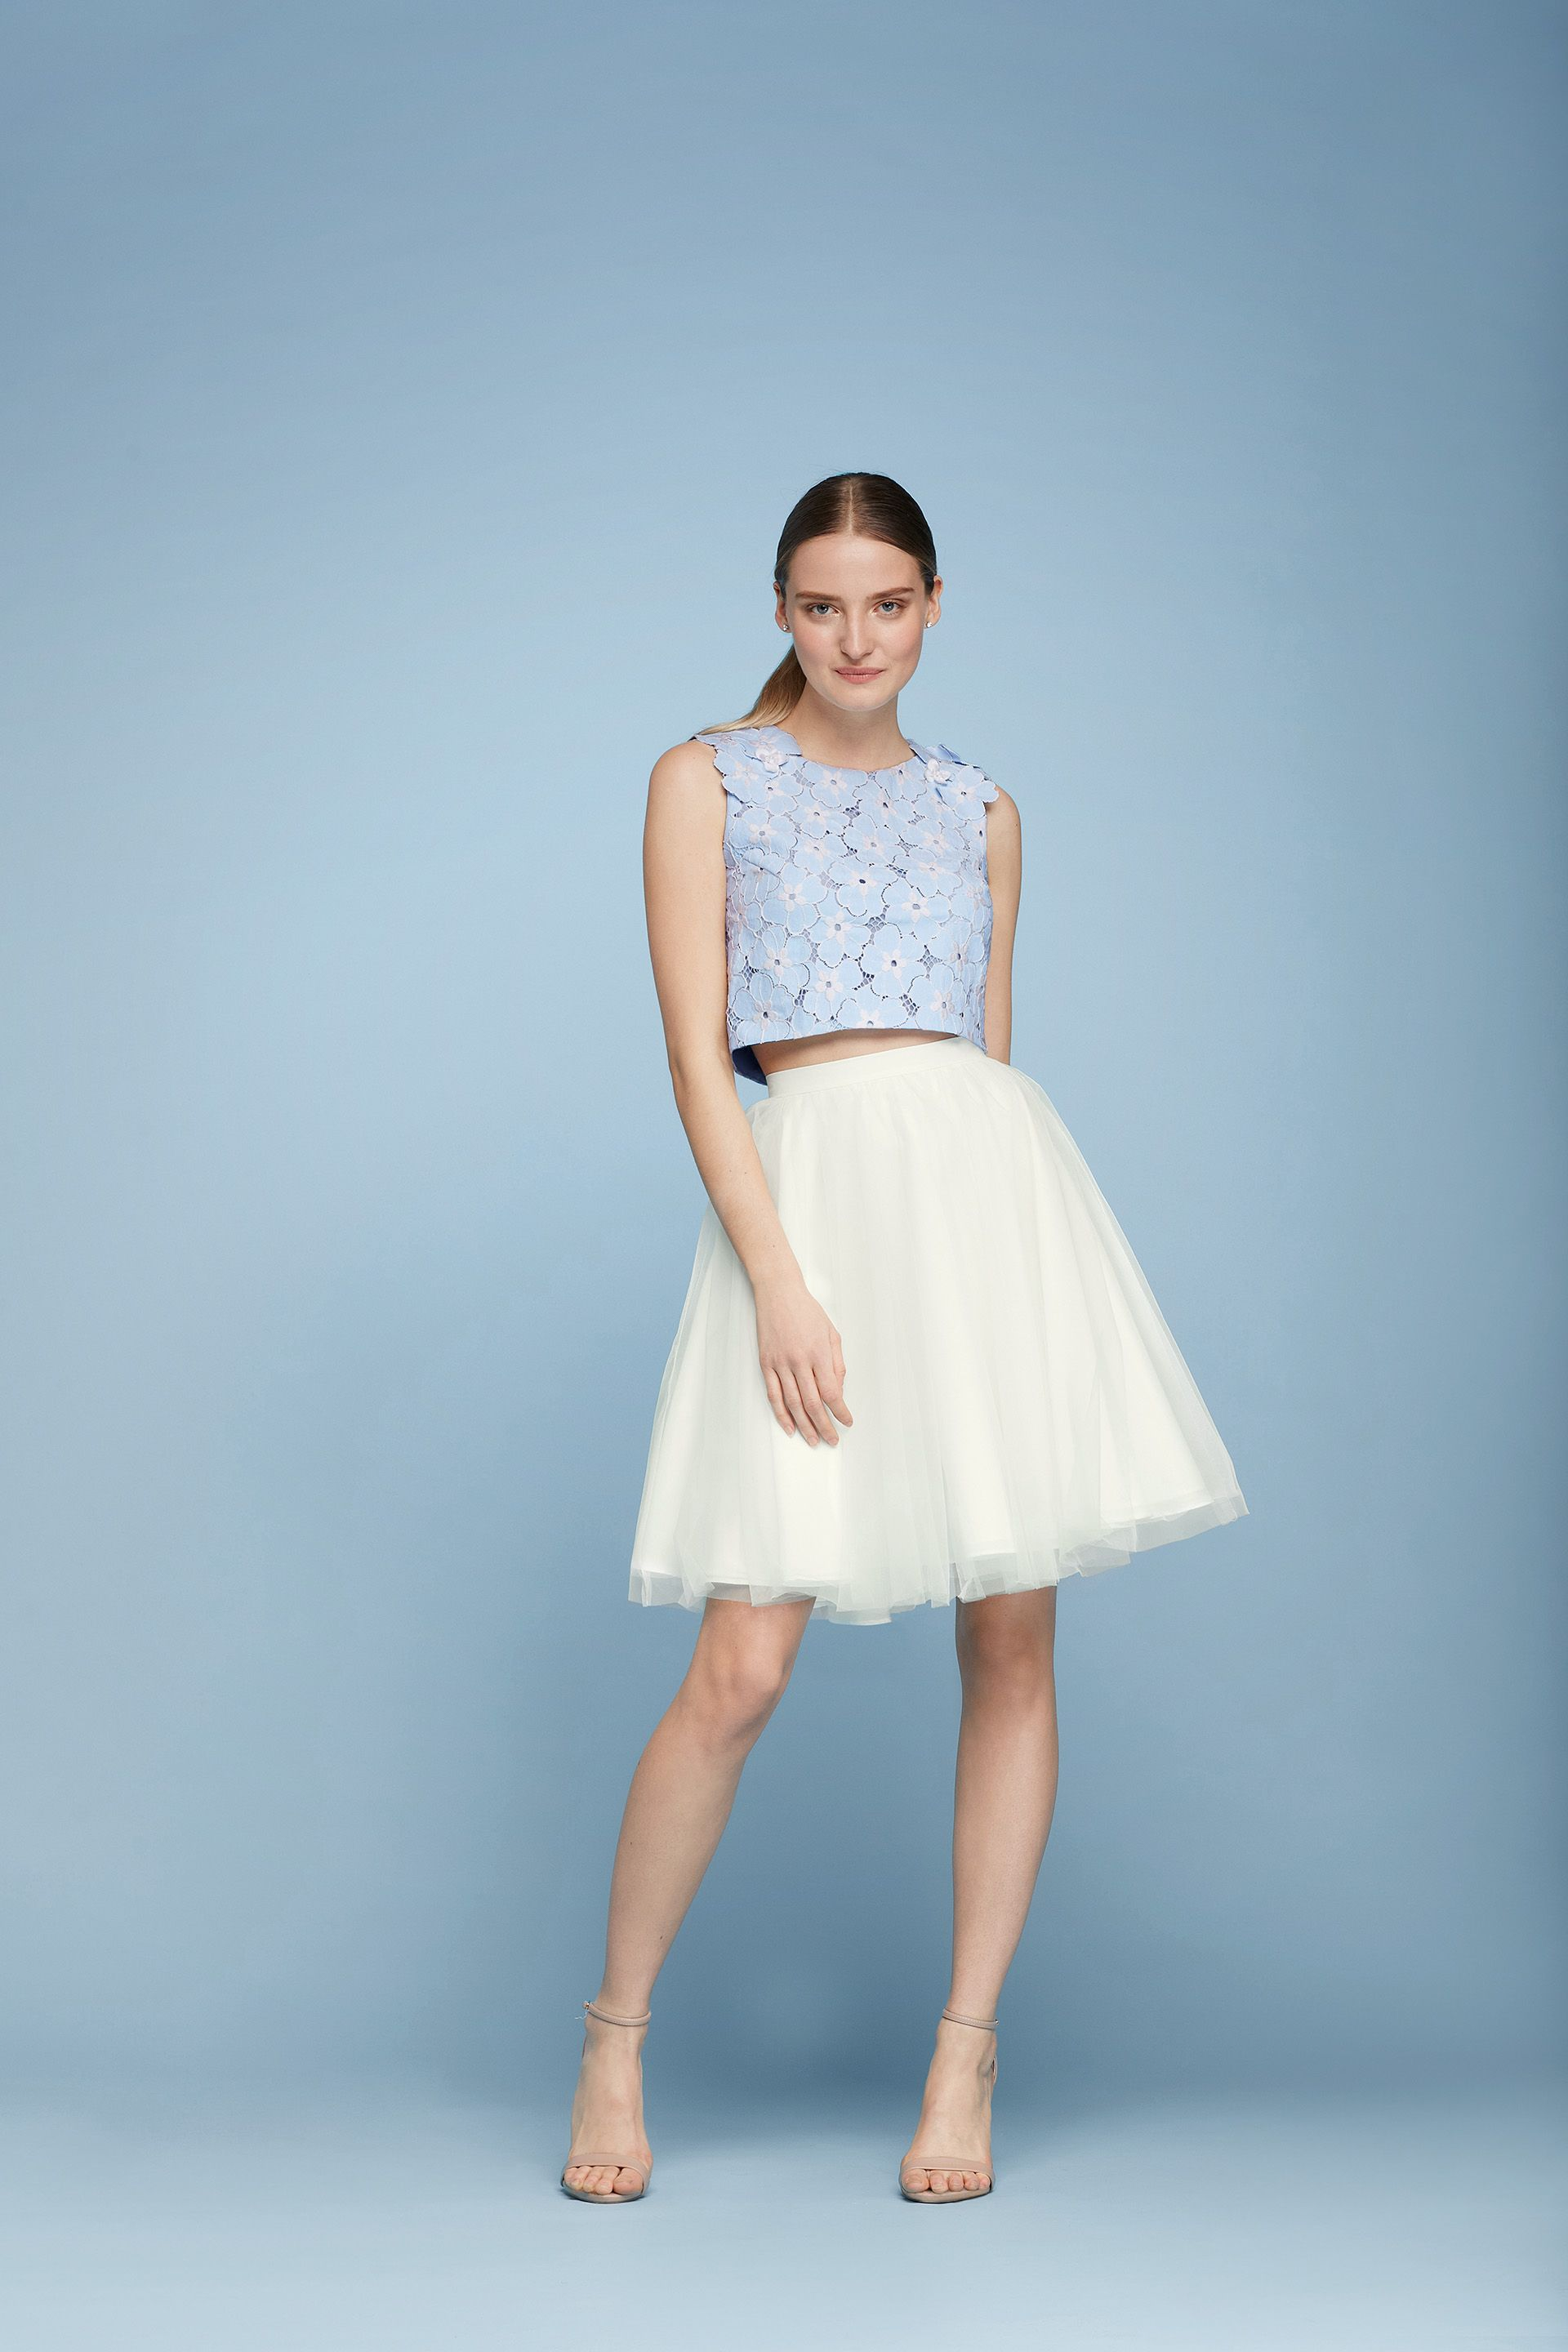 Cheers Cynthia Rowley Two Piece Tulle and Lace Short Dress ...